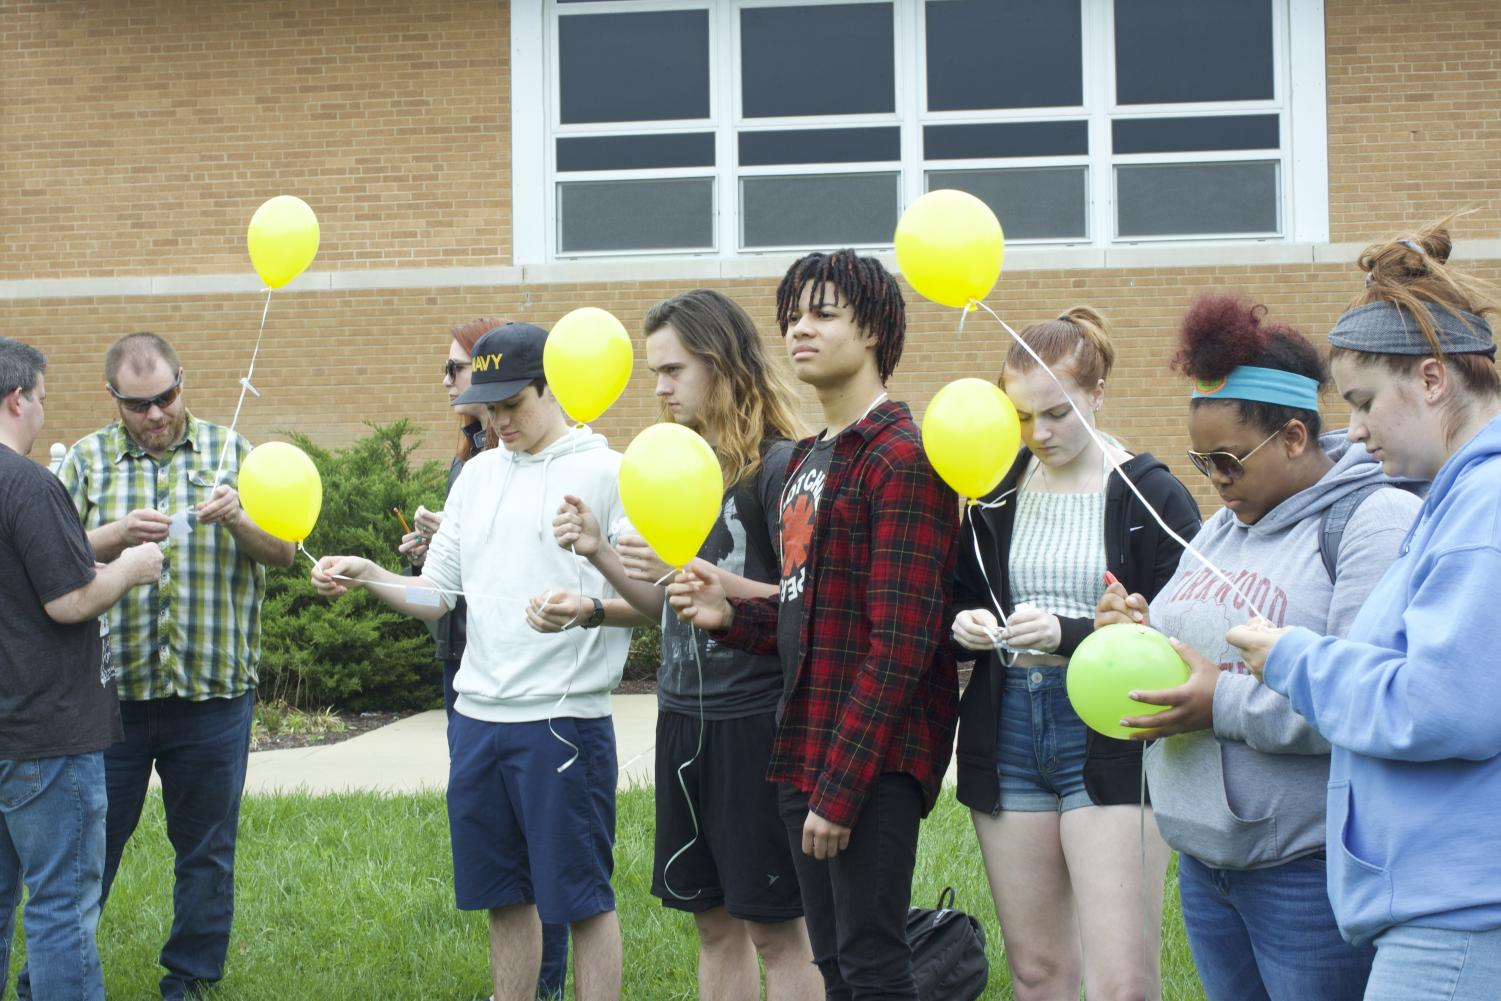 Students+tie+their+written+messages+to+their+balloons.